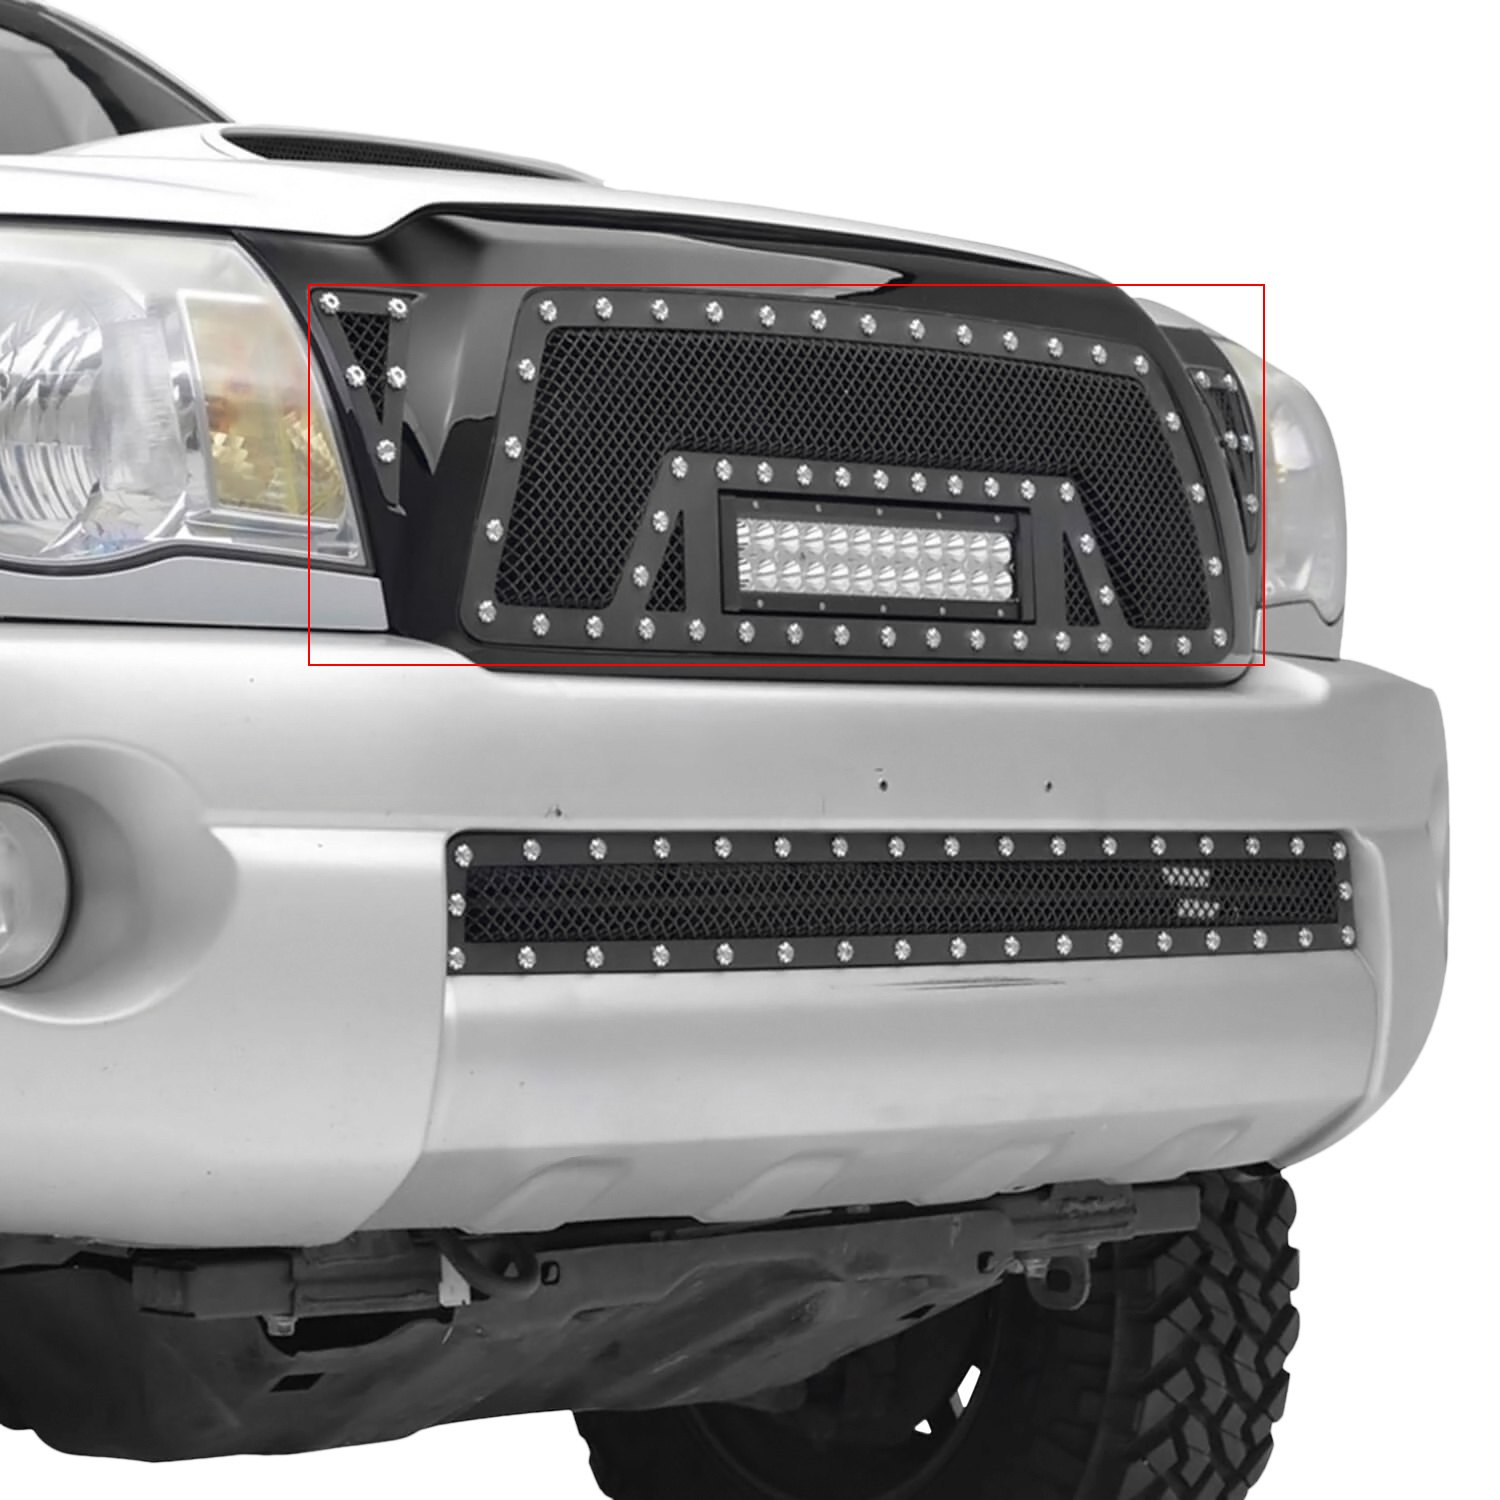 Led Underglow Wire Up Help Audio Video Electronics Toyota Owners